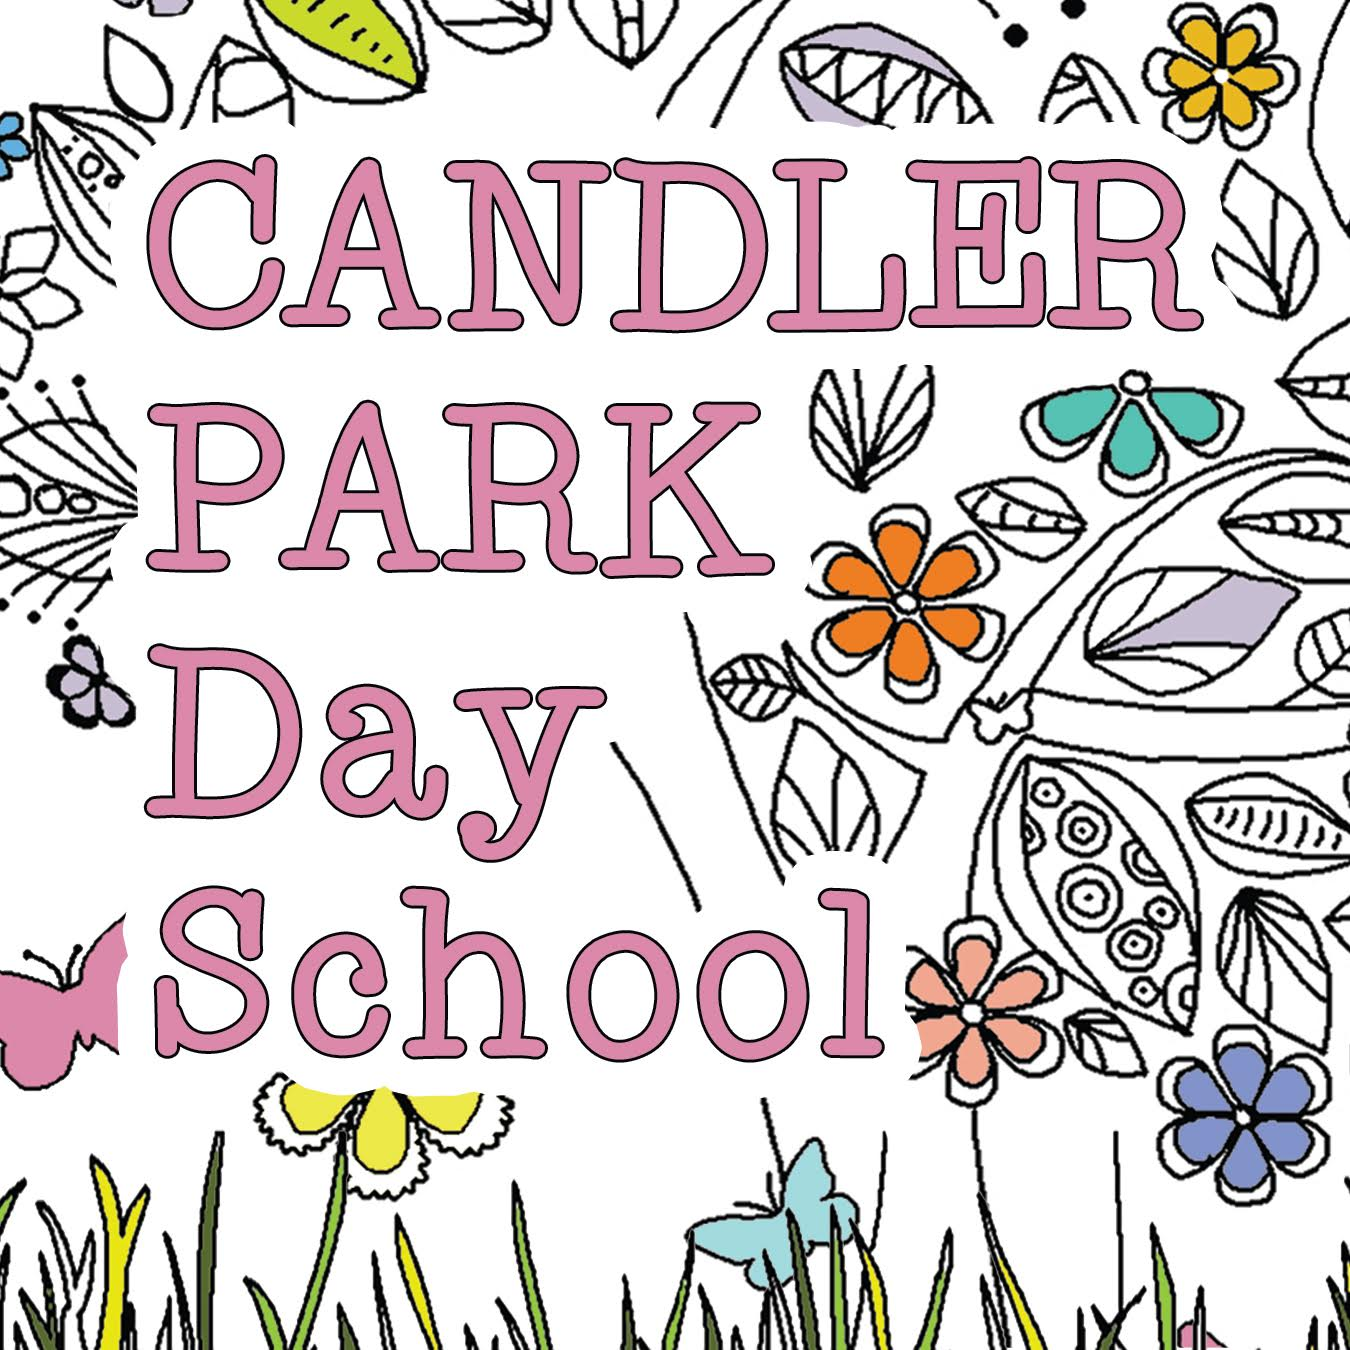 Candler Park Day School